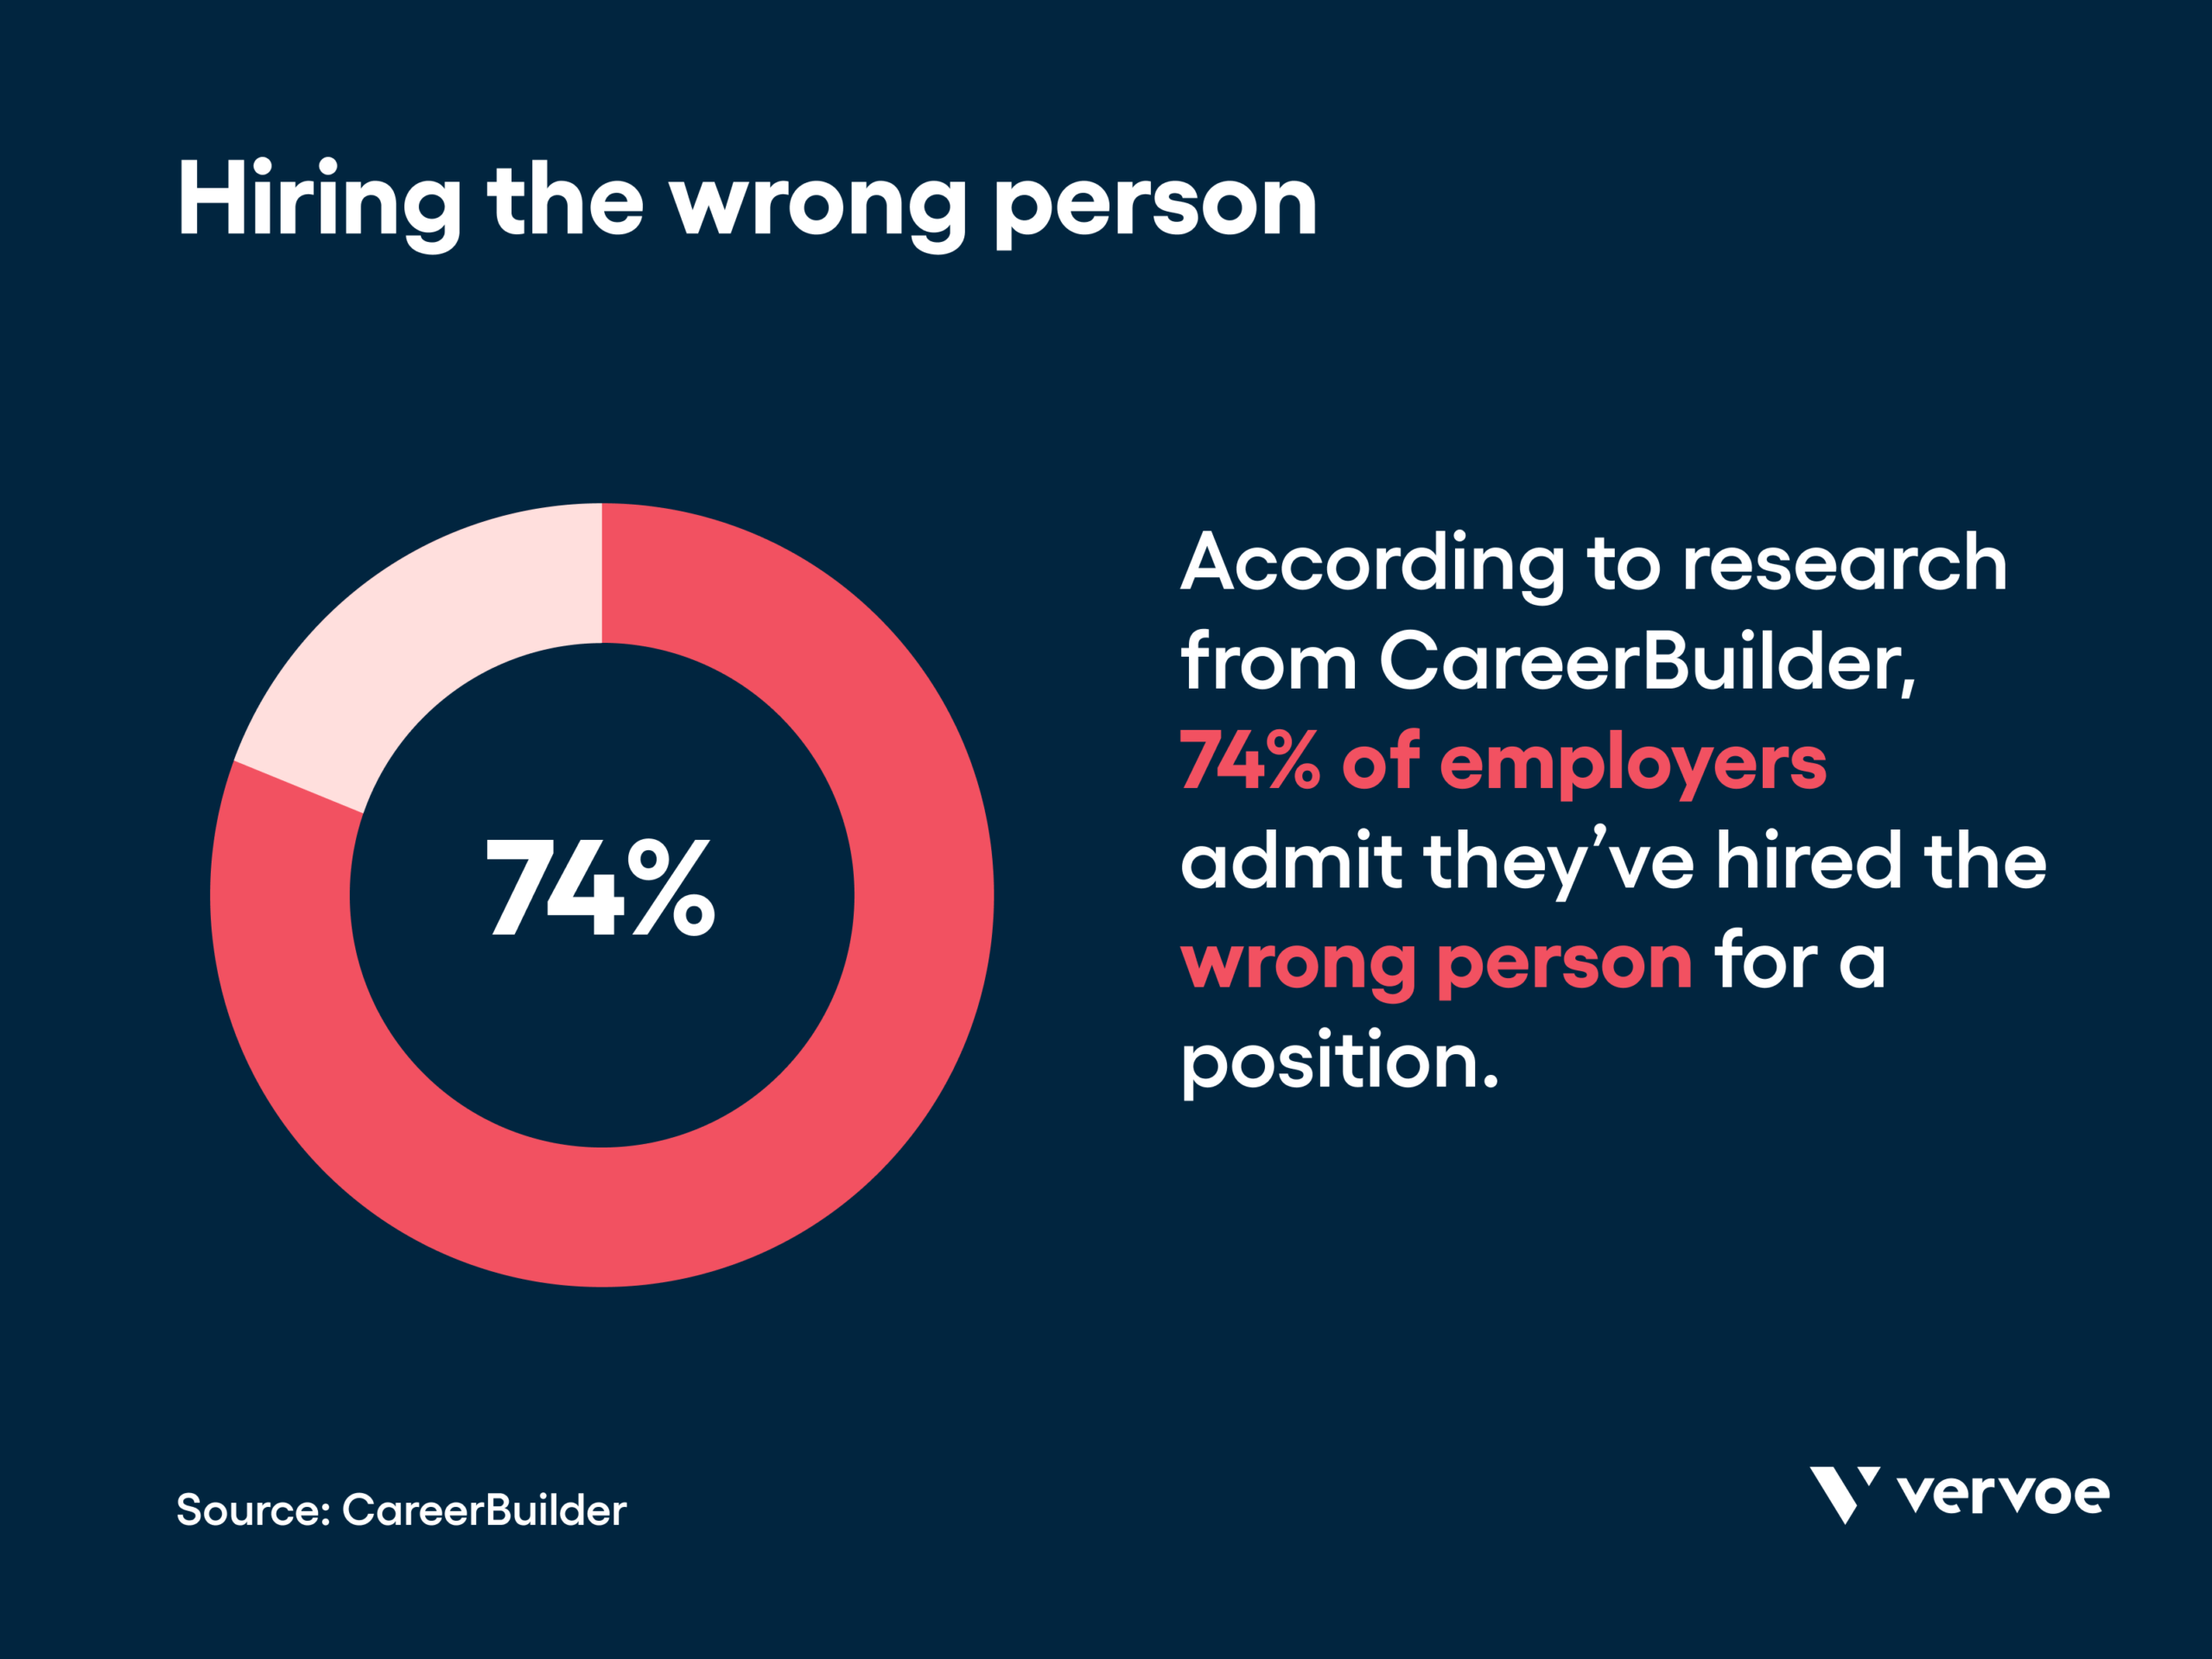 Infographic showing 74% of employers have hired the wrong person for a position